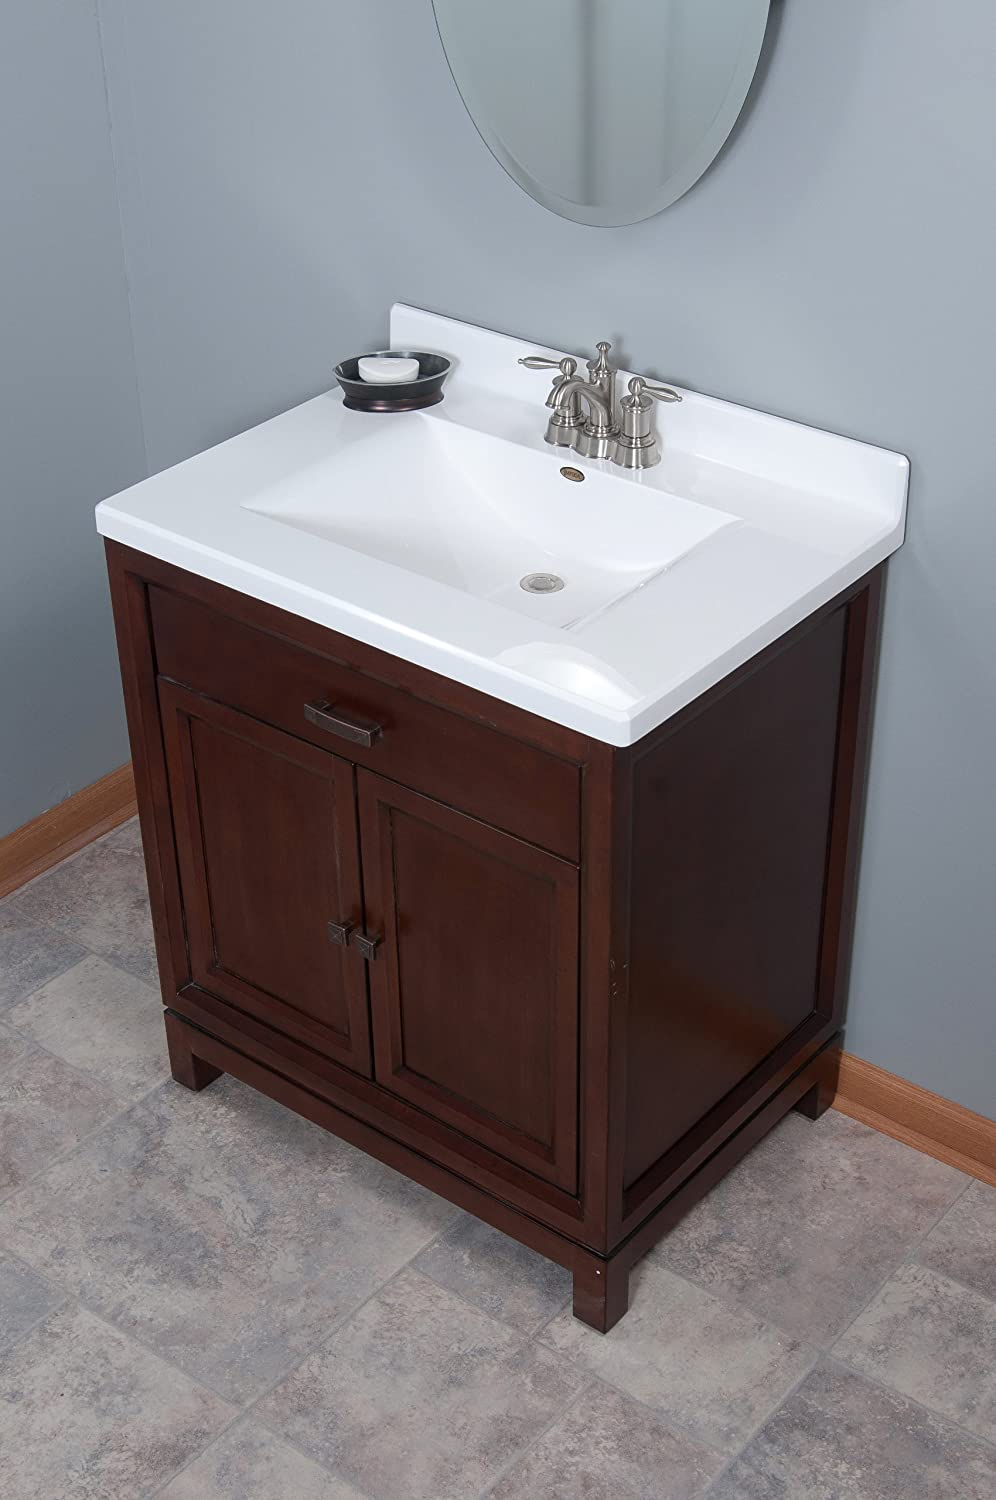 Imperial FW3122SPW Center Wave Bowl Bathroom Vanity Top  Solid White Gloss  Finish  31 Inch Wide by 22 Inch Deep   Vanity Sinks   Amazon com. Imperial FW3122SPW Center Wave Bowl Bathroom Vanity Top  Solid